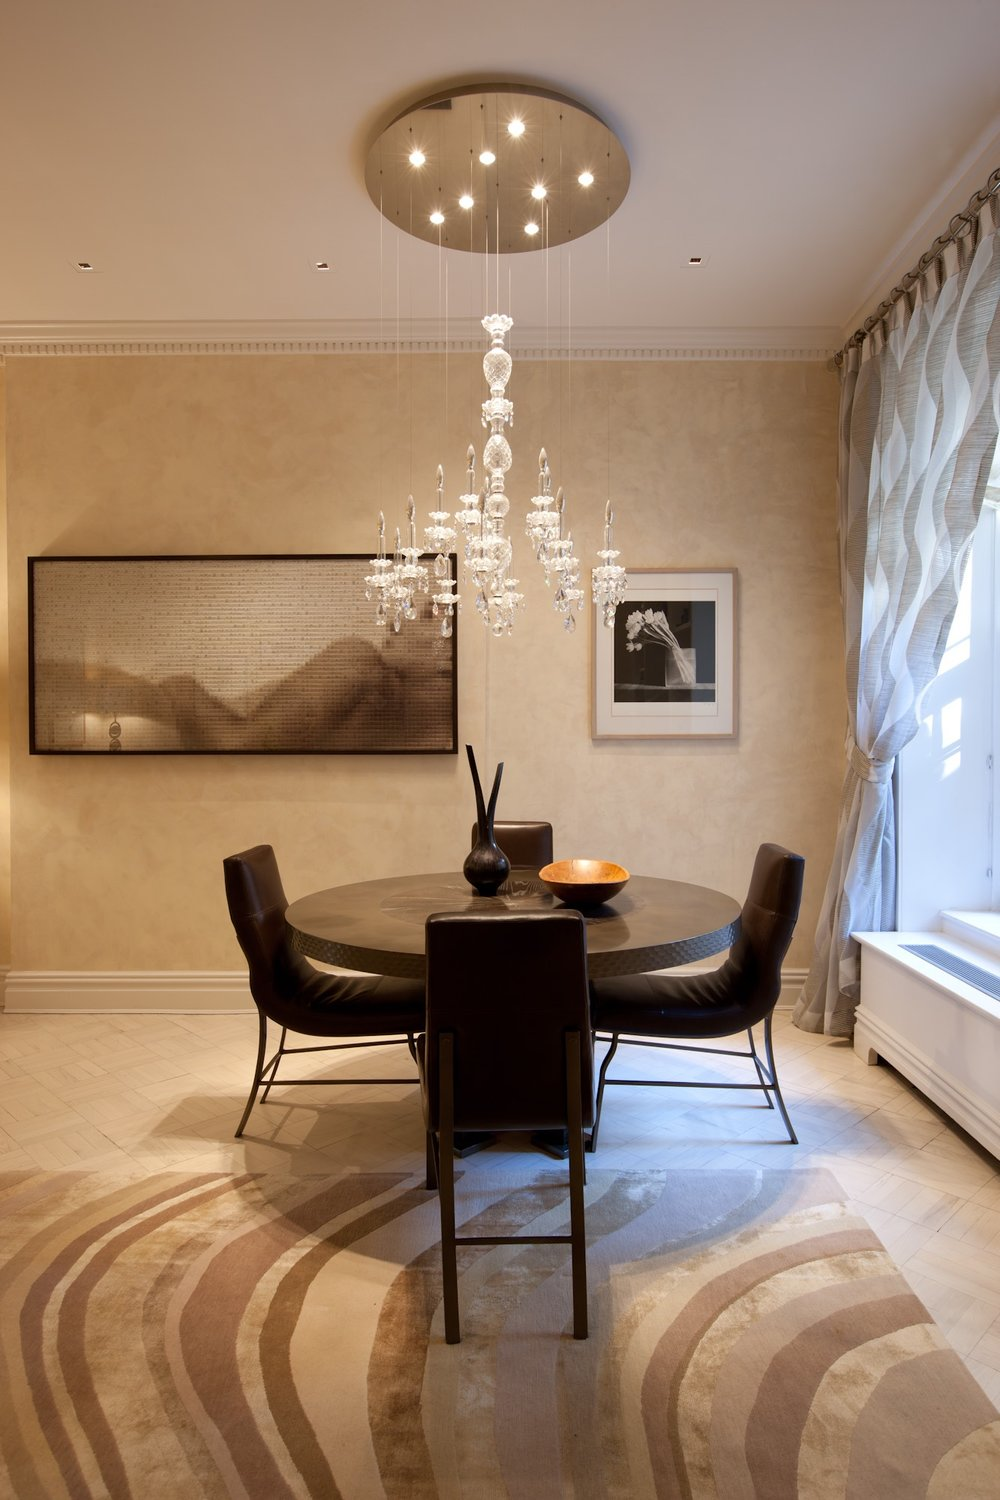 sophie-harrison-amathea-luxury-interior-design-for-professional-women-neutral serene modern dining room.jpg